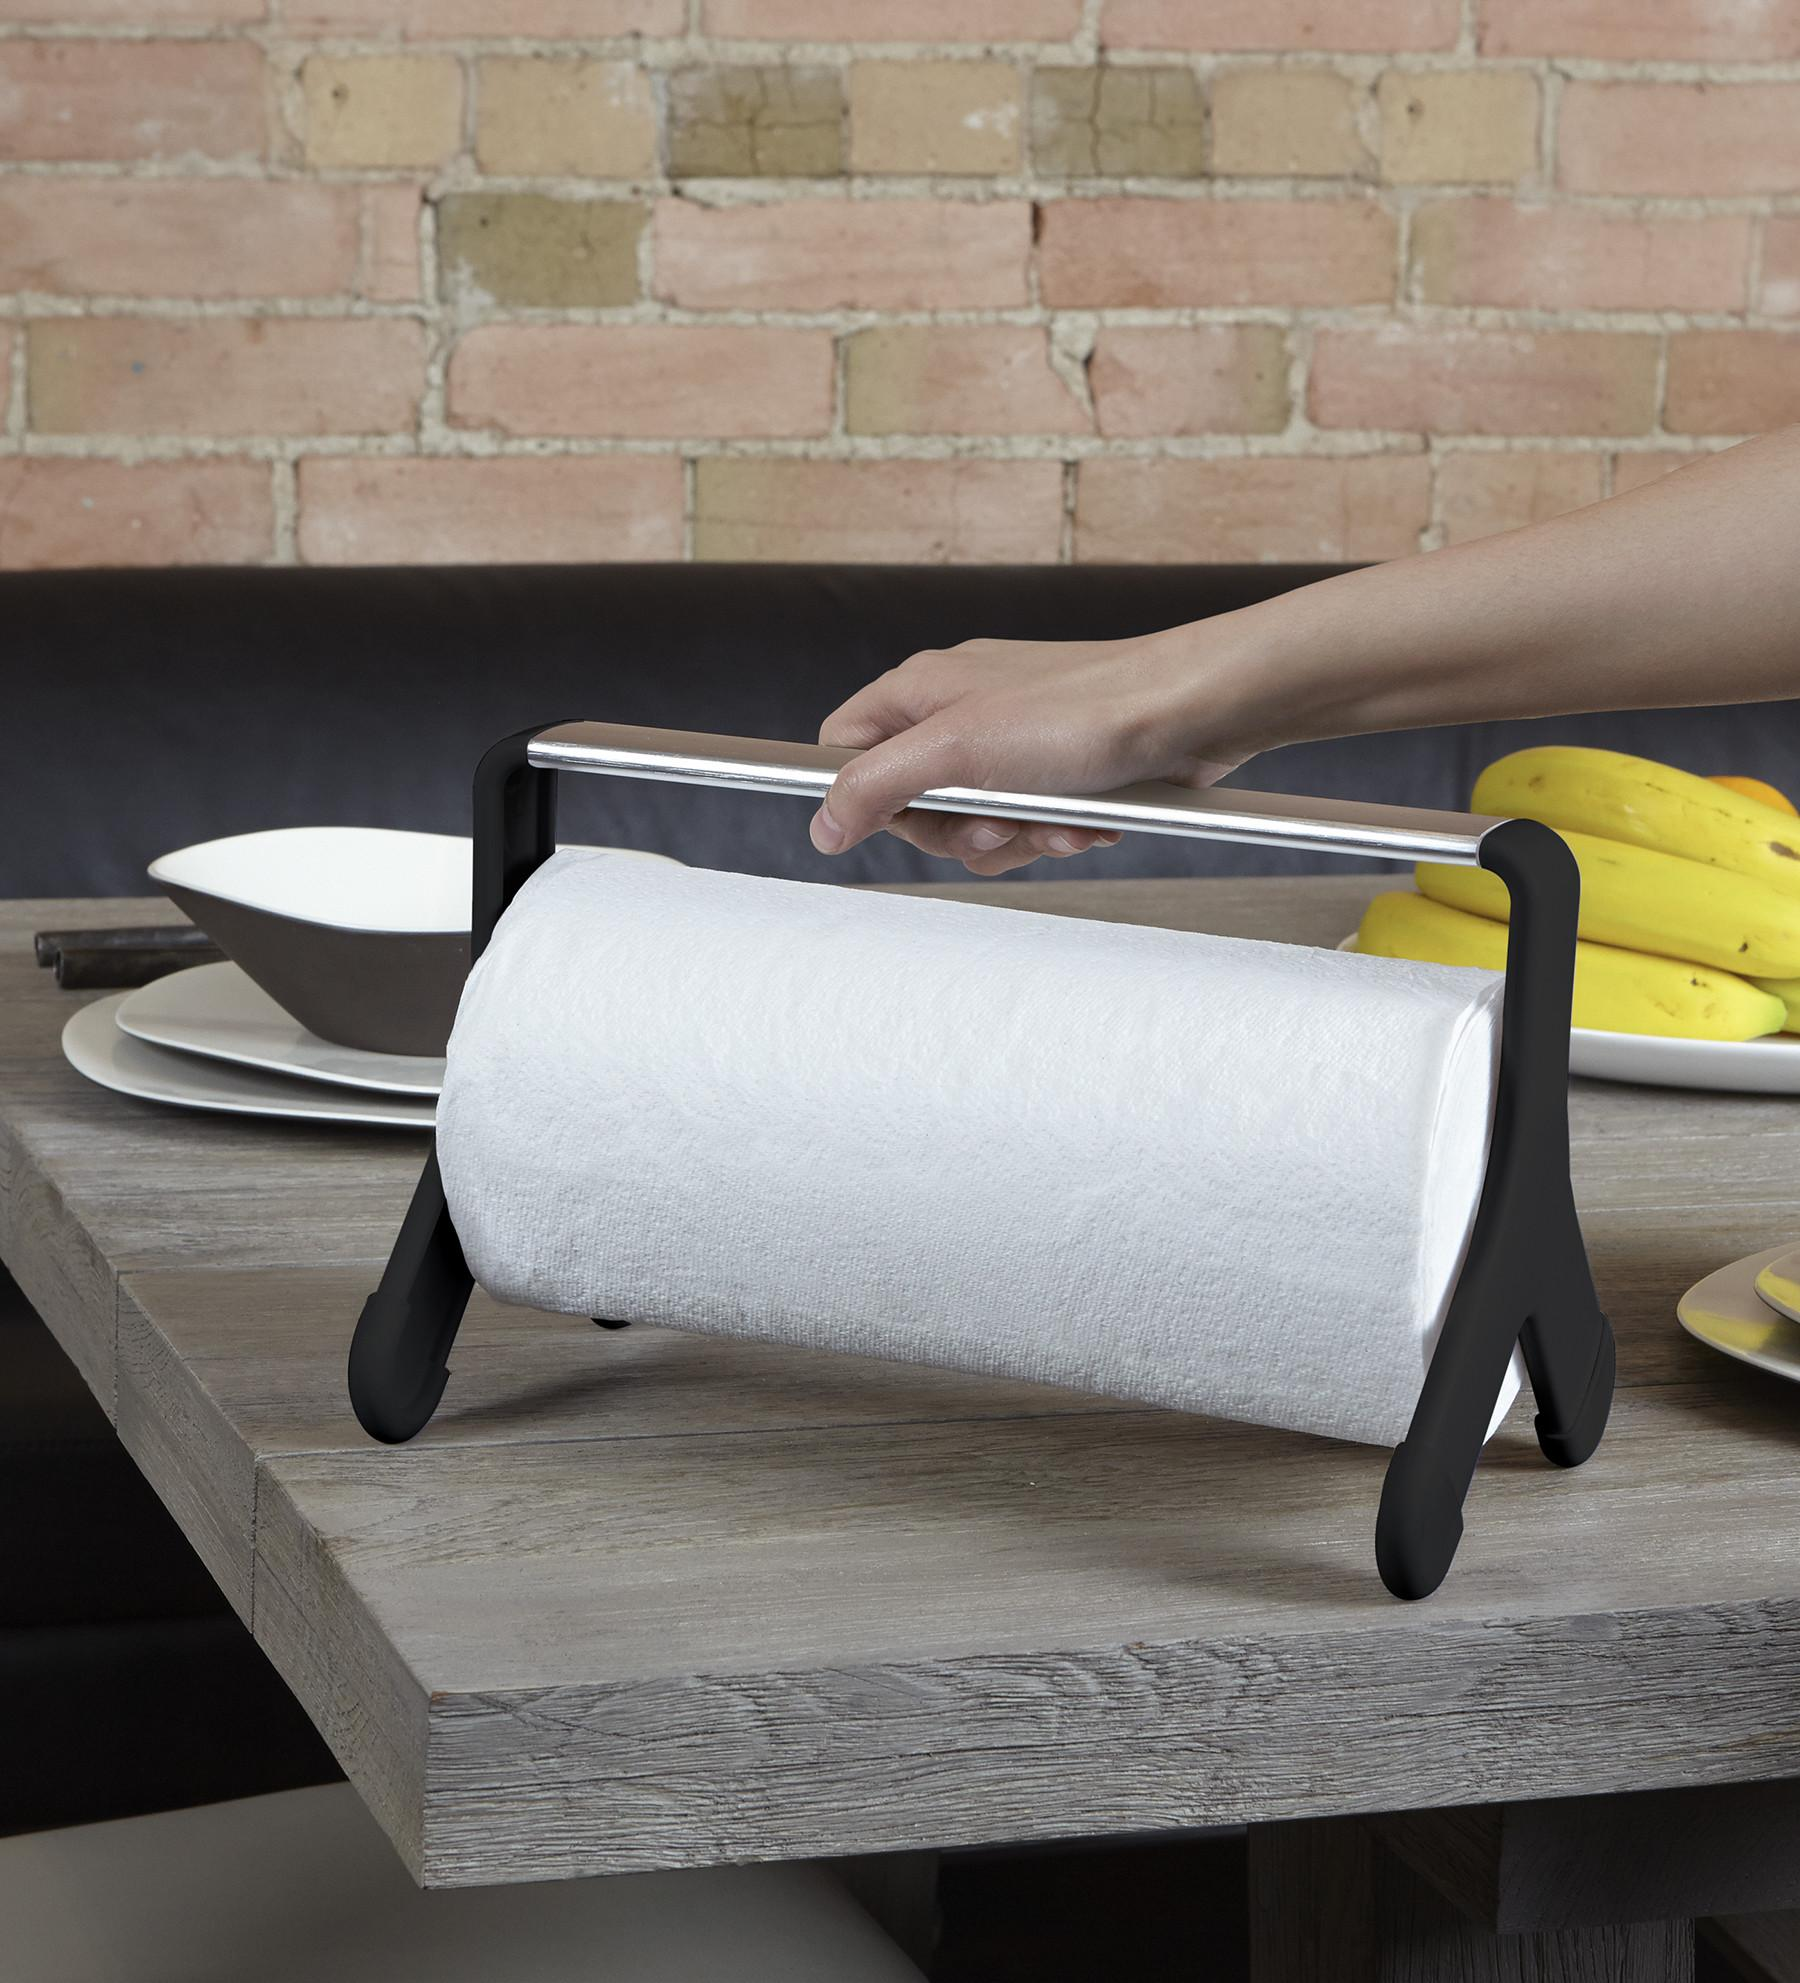 Introducing Tritow Paper Towel Holder Umbra Journal